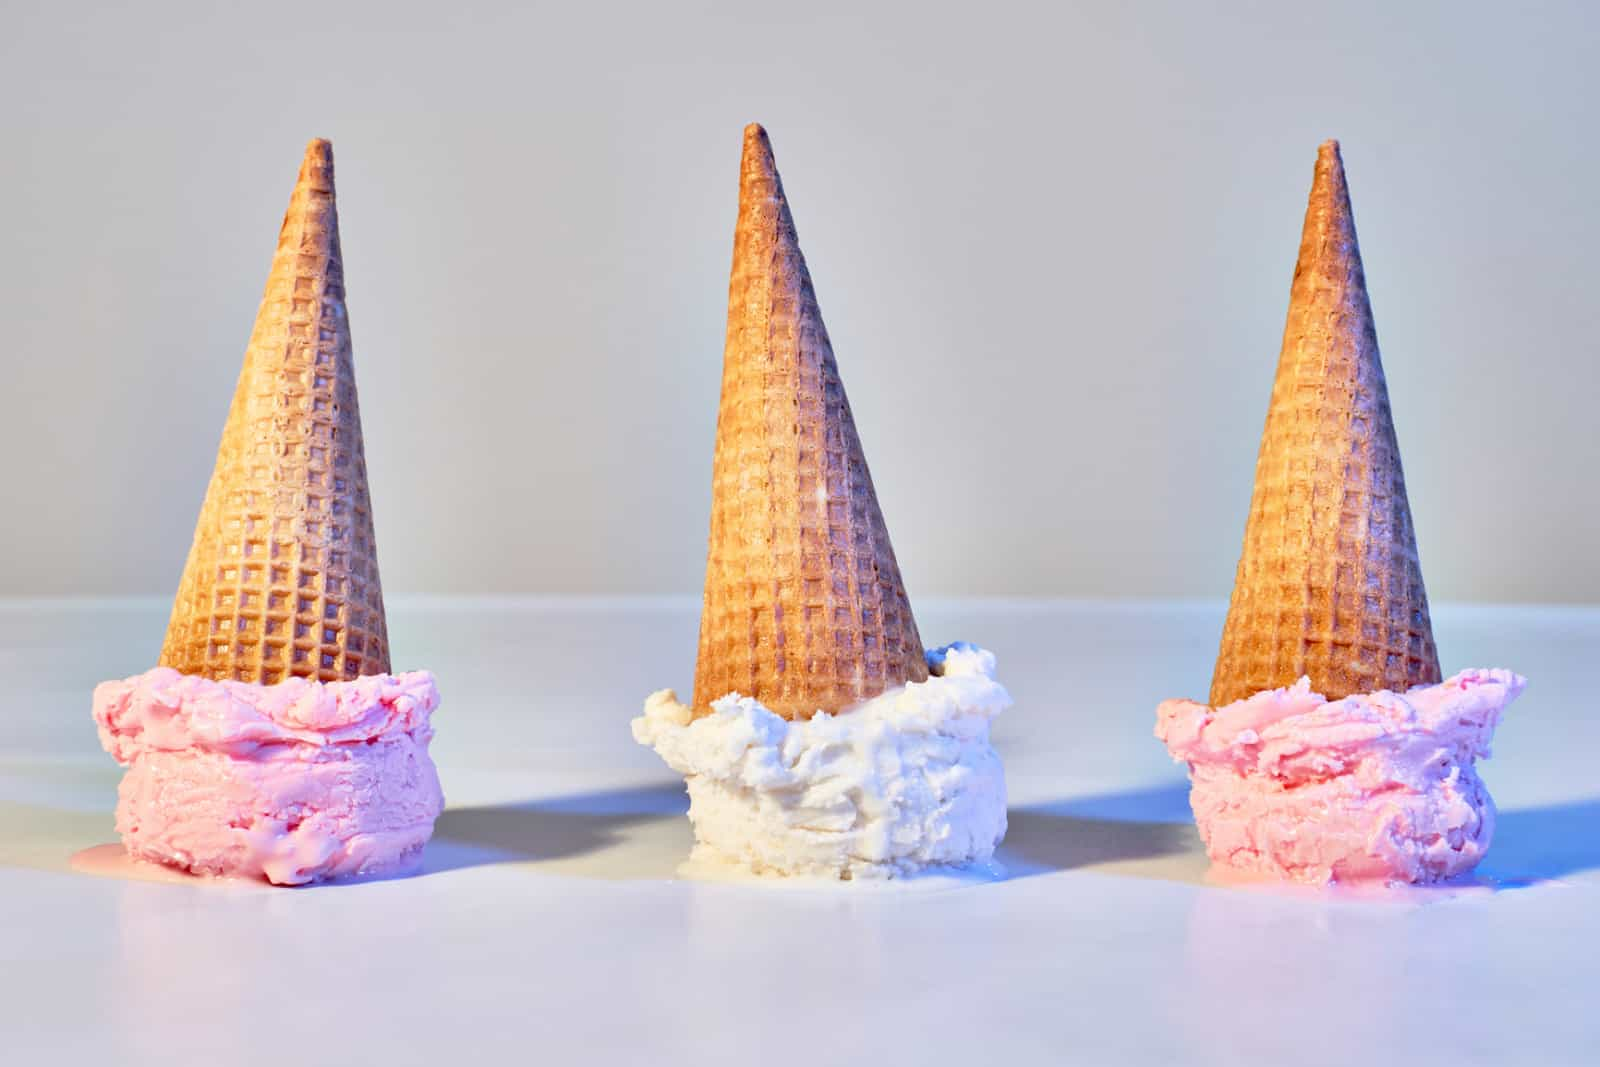 Ice cream cones shot in the style of Mid-Century pop art